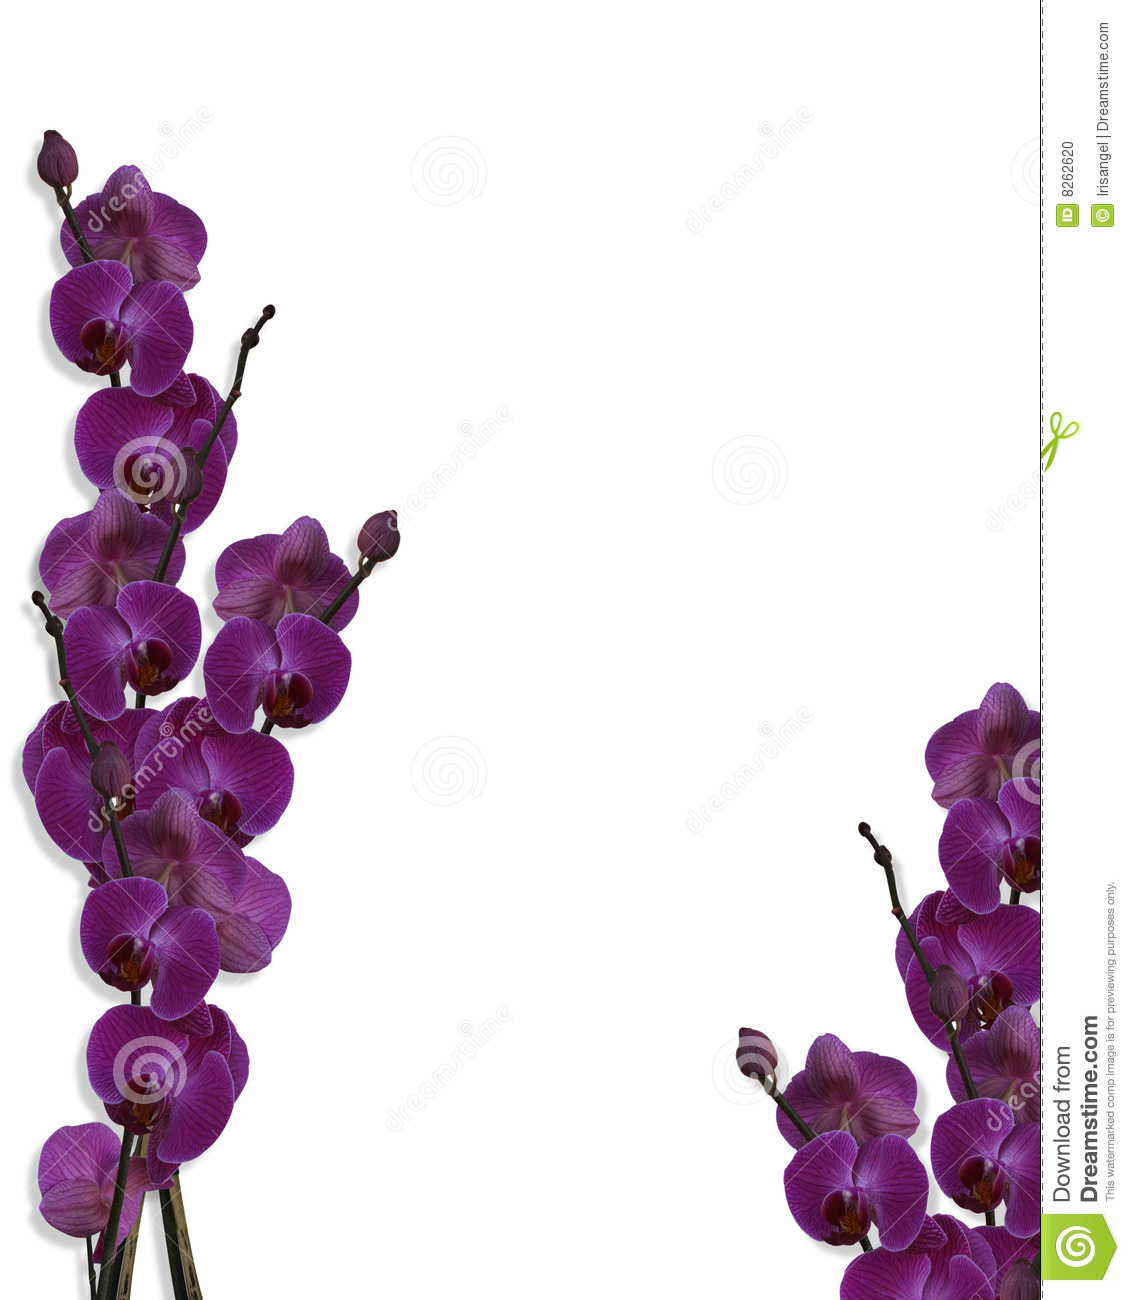 Free Download Purple Flower Wallpaper Border Weddingdressincom